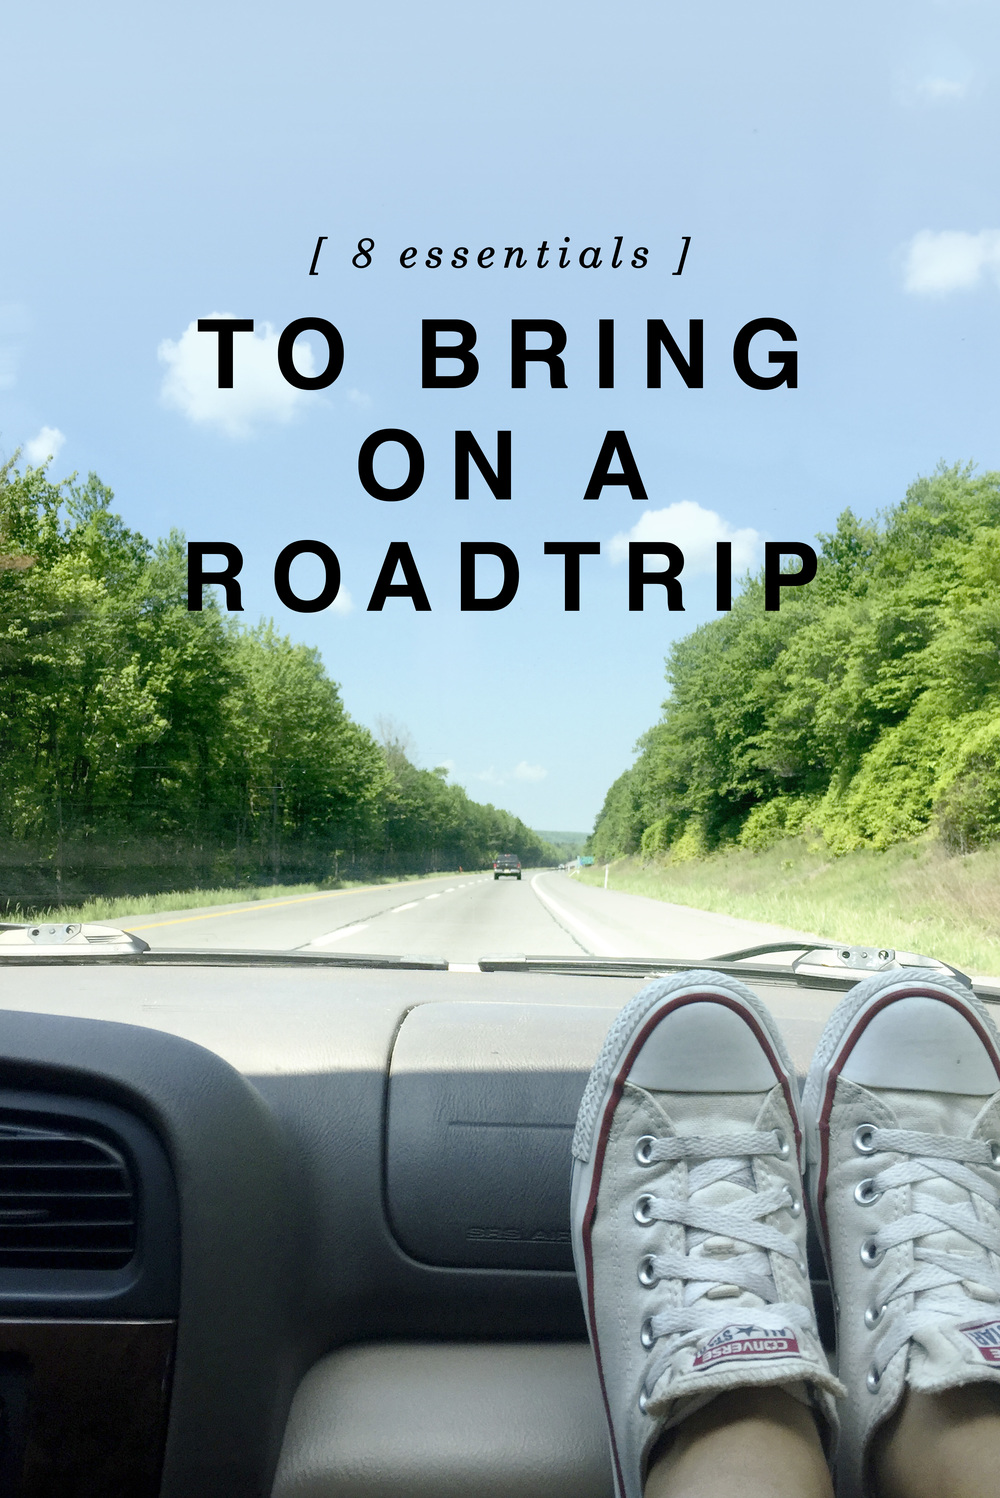 8 Essentials to Bring on a Roadtrip - Shannon Did What?